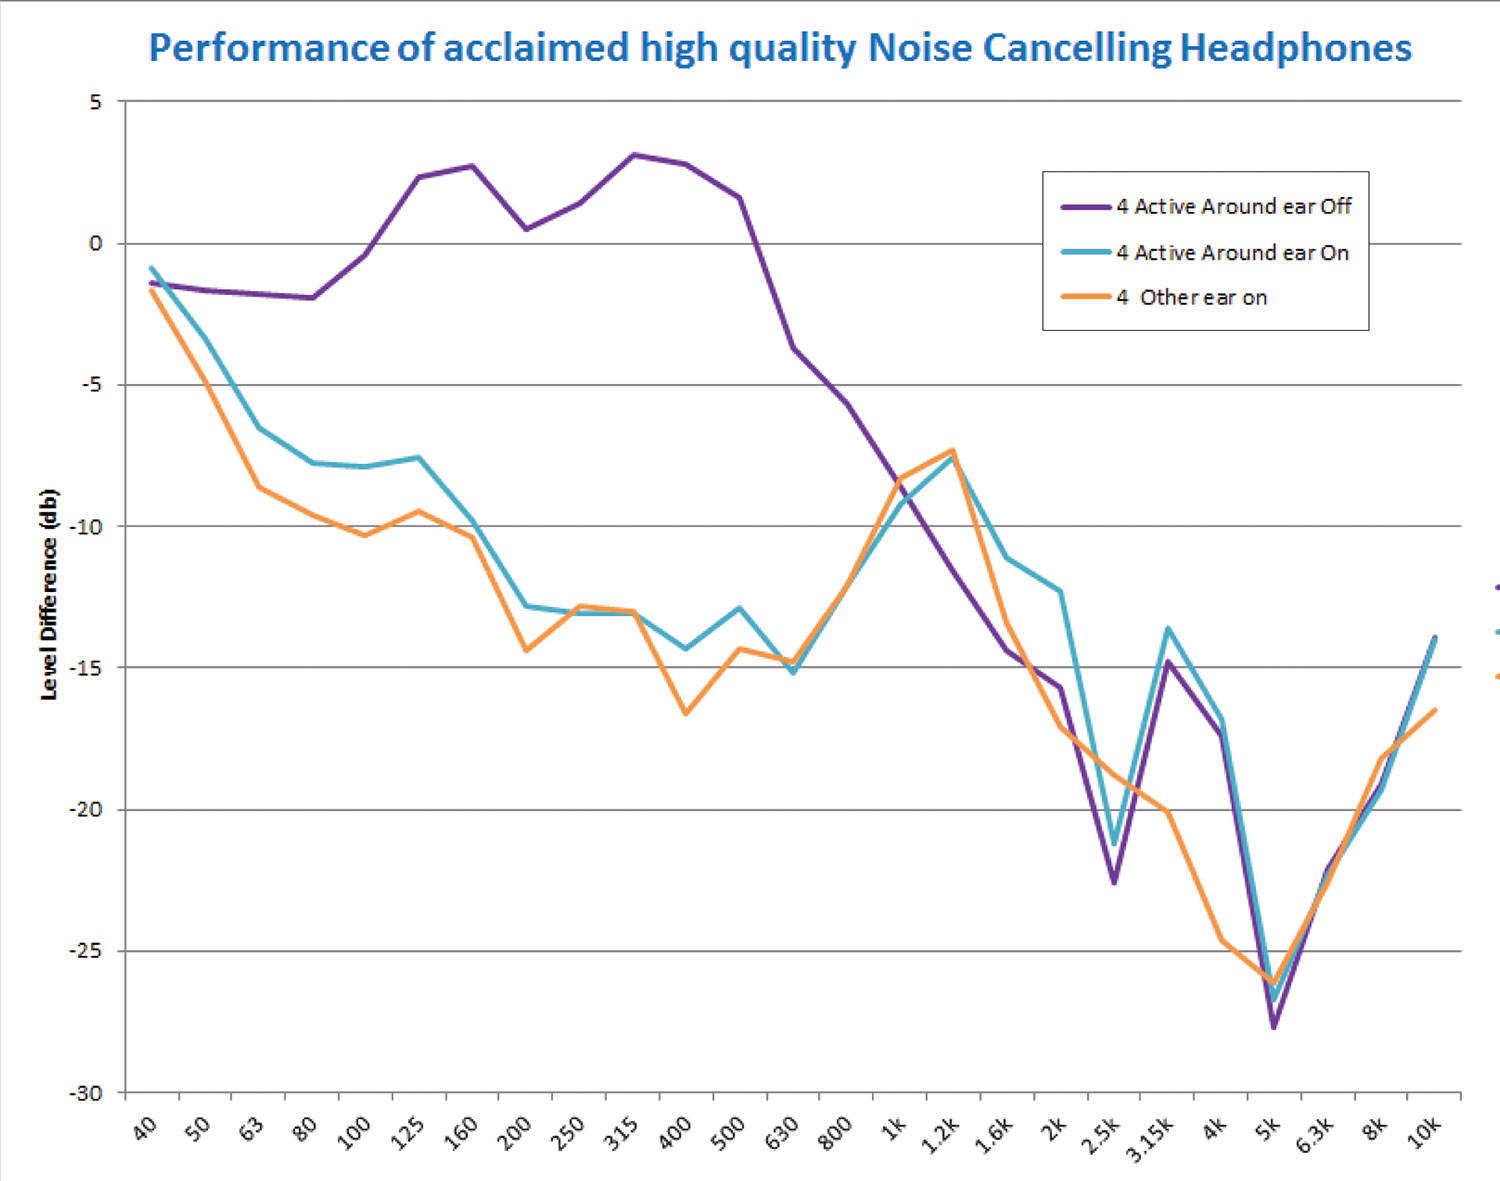 Figure 4. Performance of high-quality noise-canceling headphones.